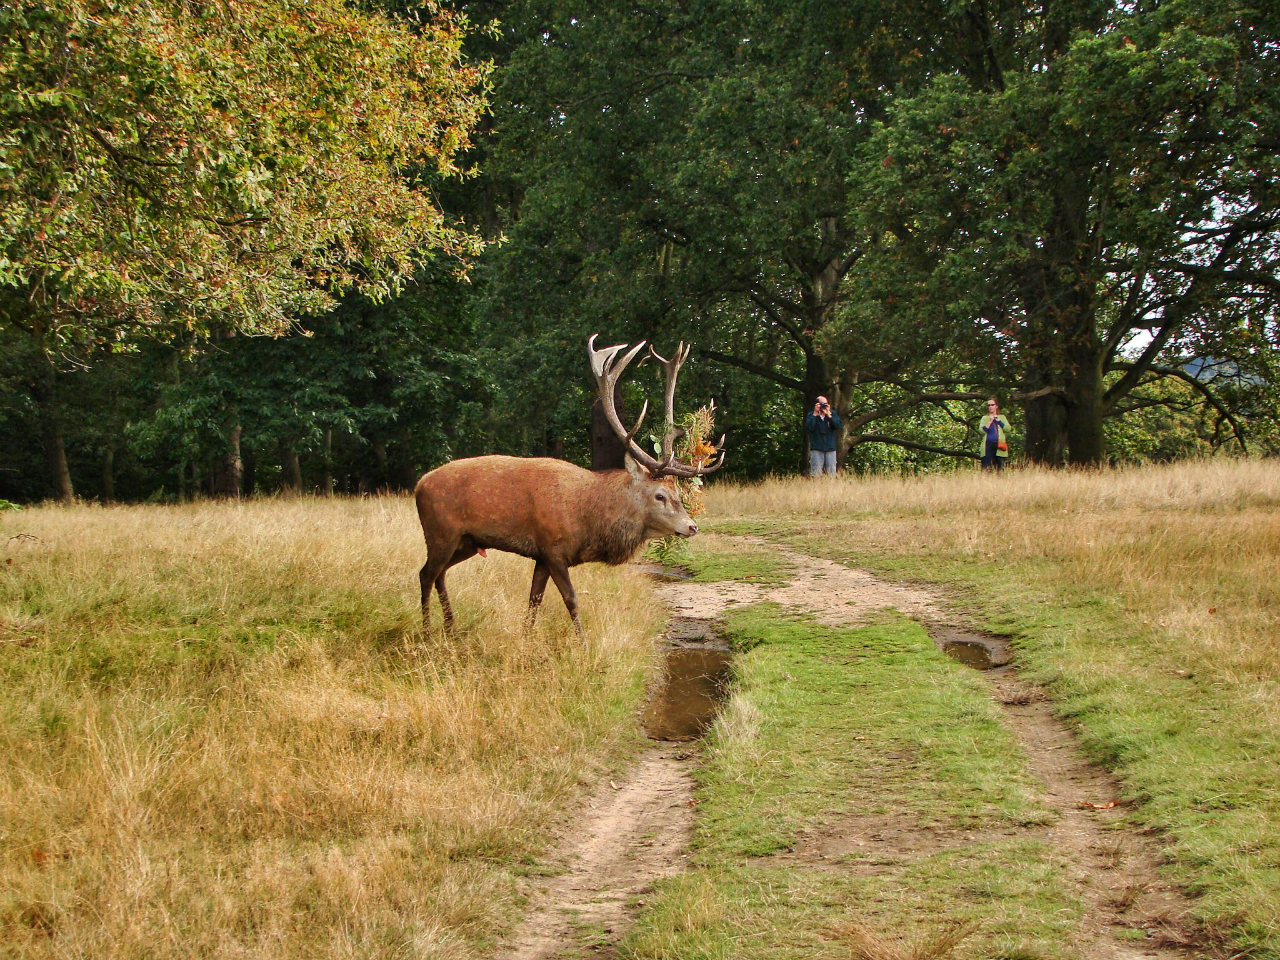 A red deer stag in Richmond Park (5 October 2014)